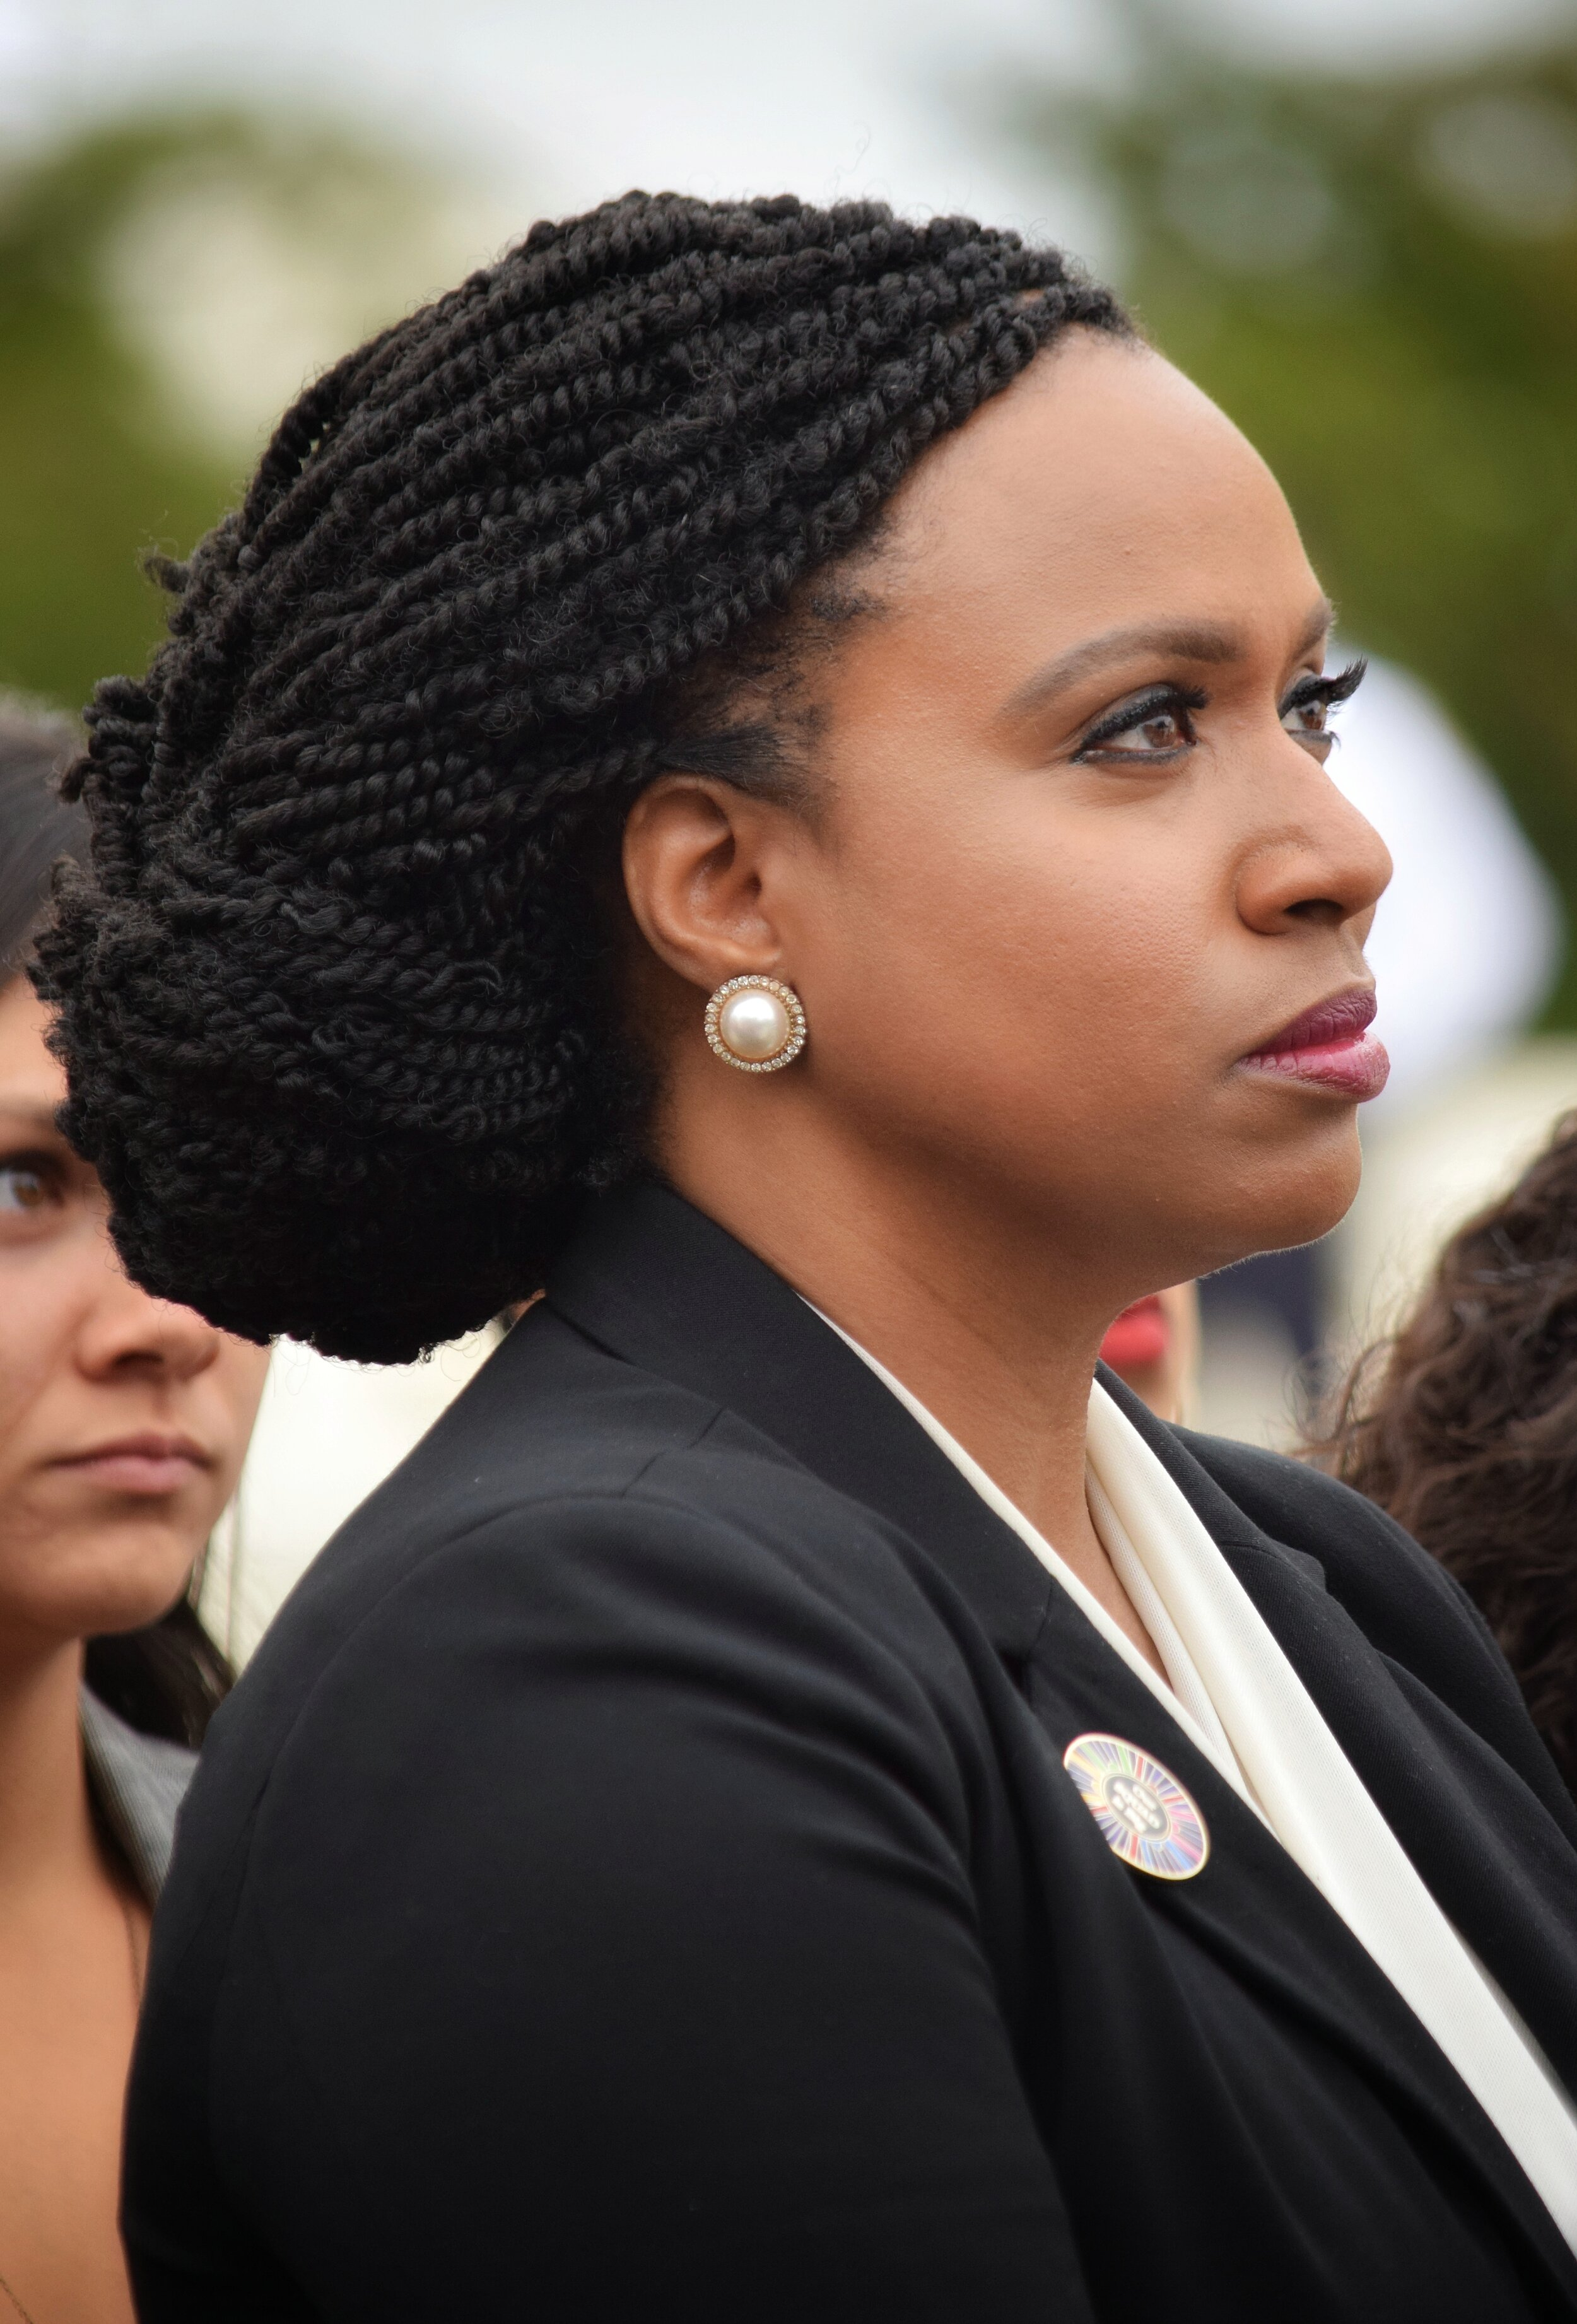 One of The Squad: Rep Ayanna Pressley at Women's March Reclaim The Court Action (October 2019)